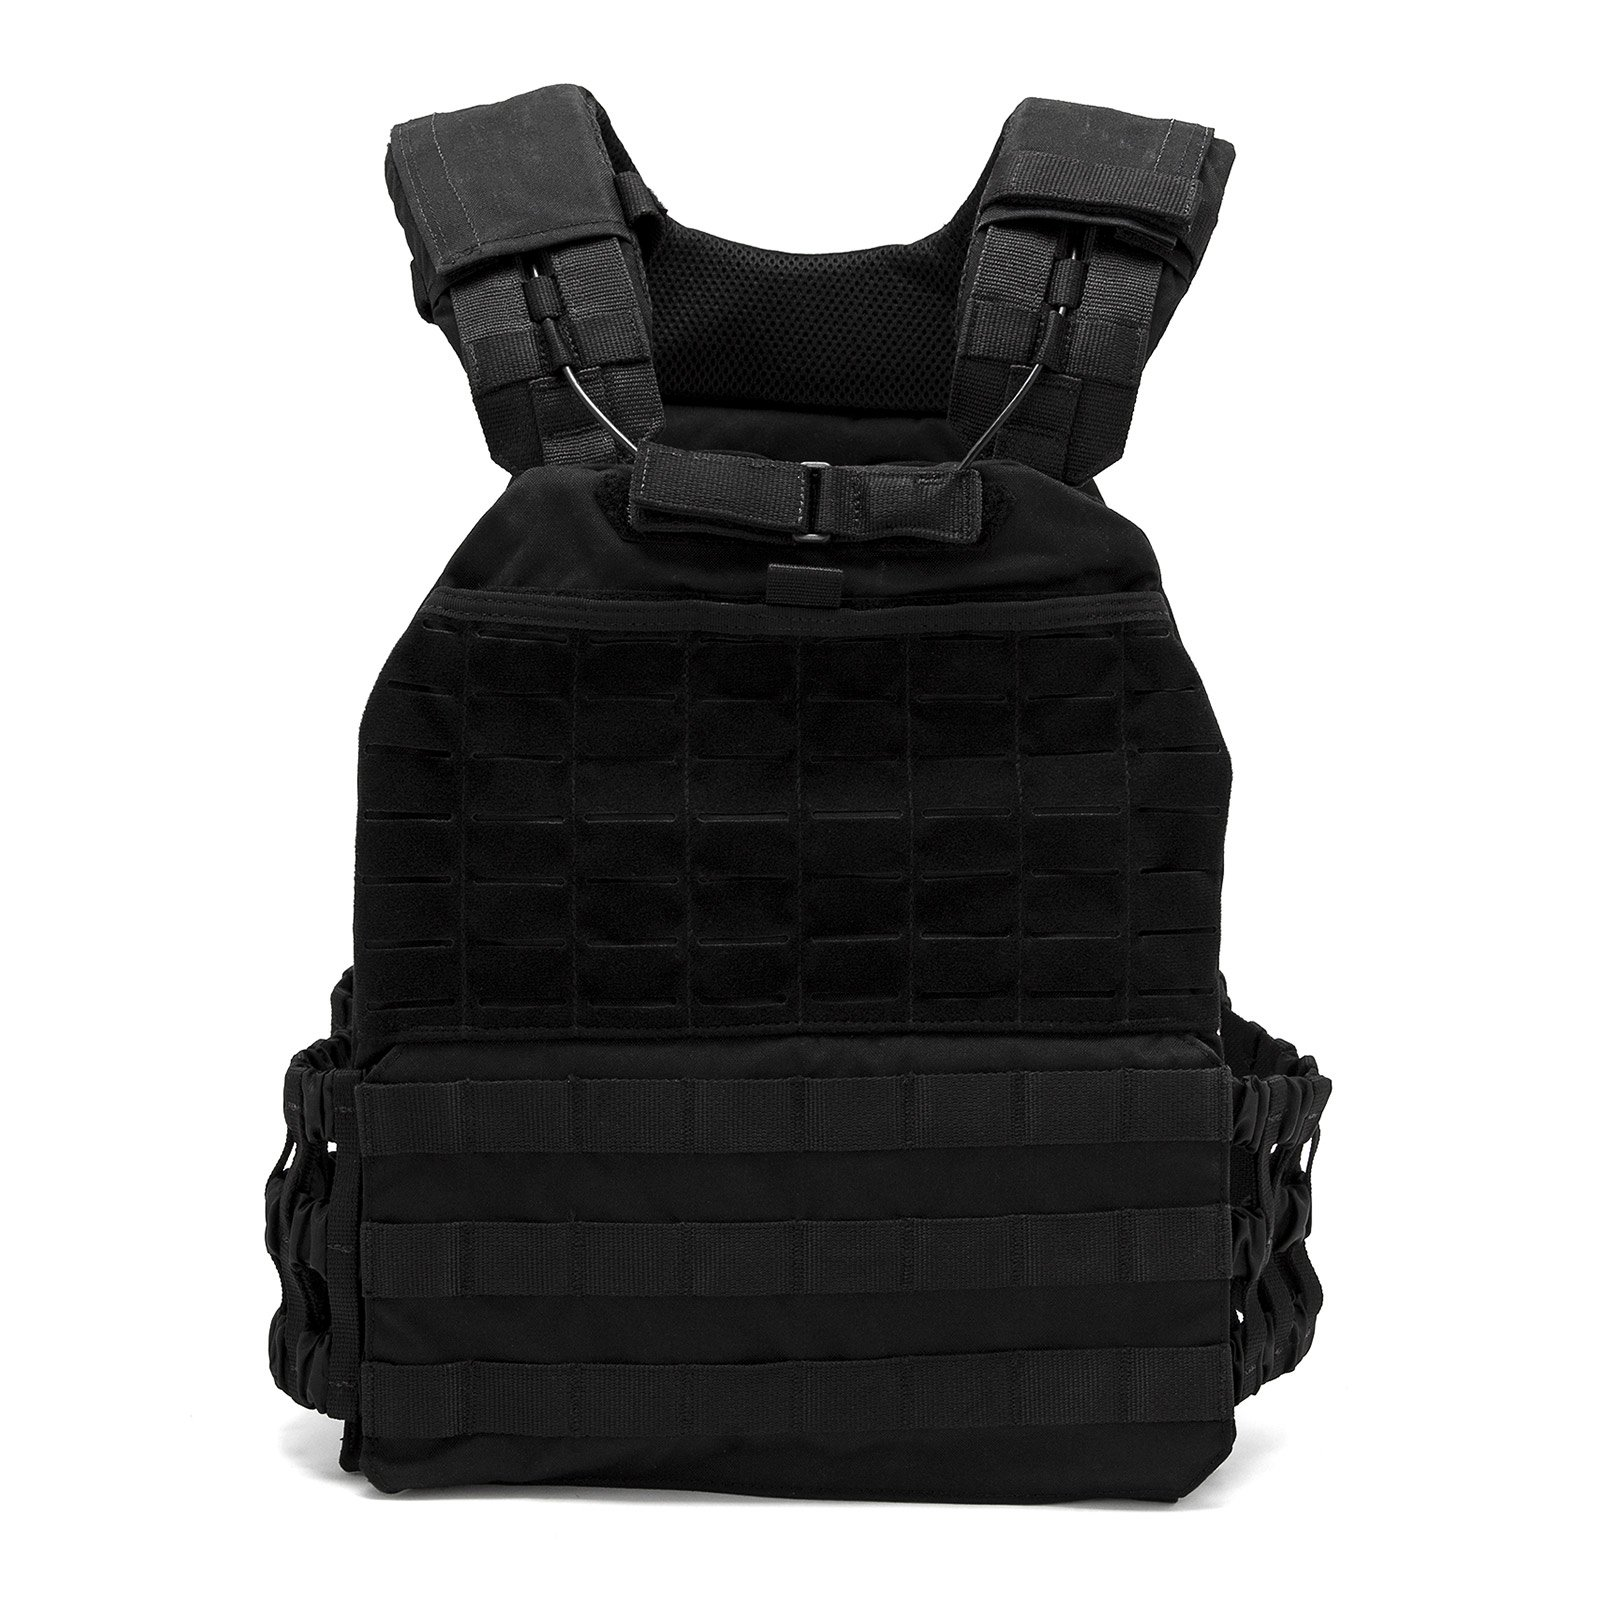 Fringe Sport Adjustable Tactical Weight Plate Vest / 10lb, 15lb or 20lb / Modular Plate Carrier for Training & Conditioning (15lb, Black)